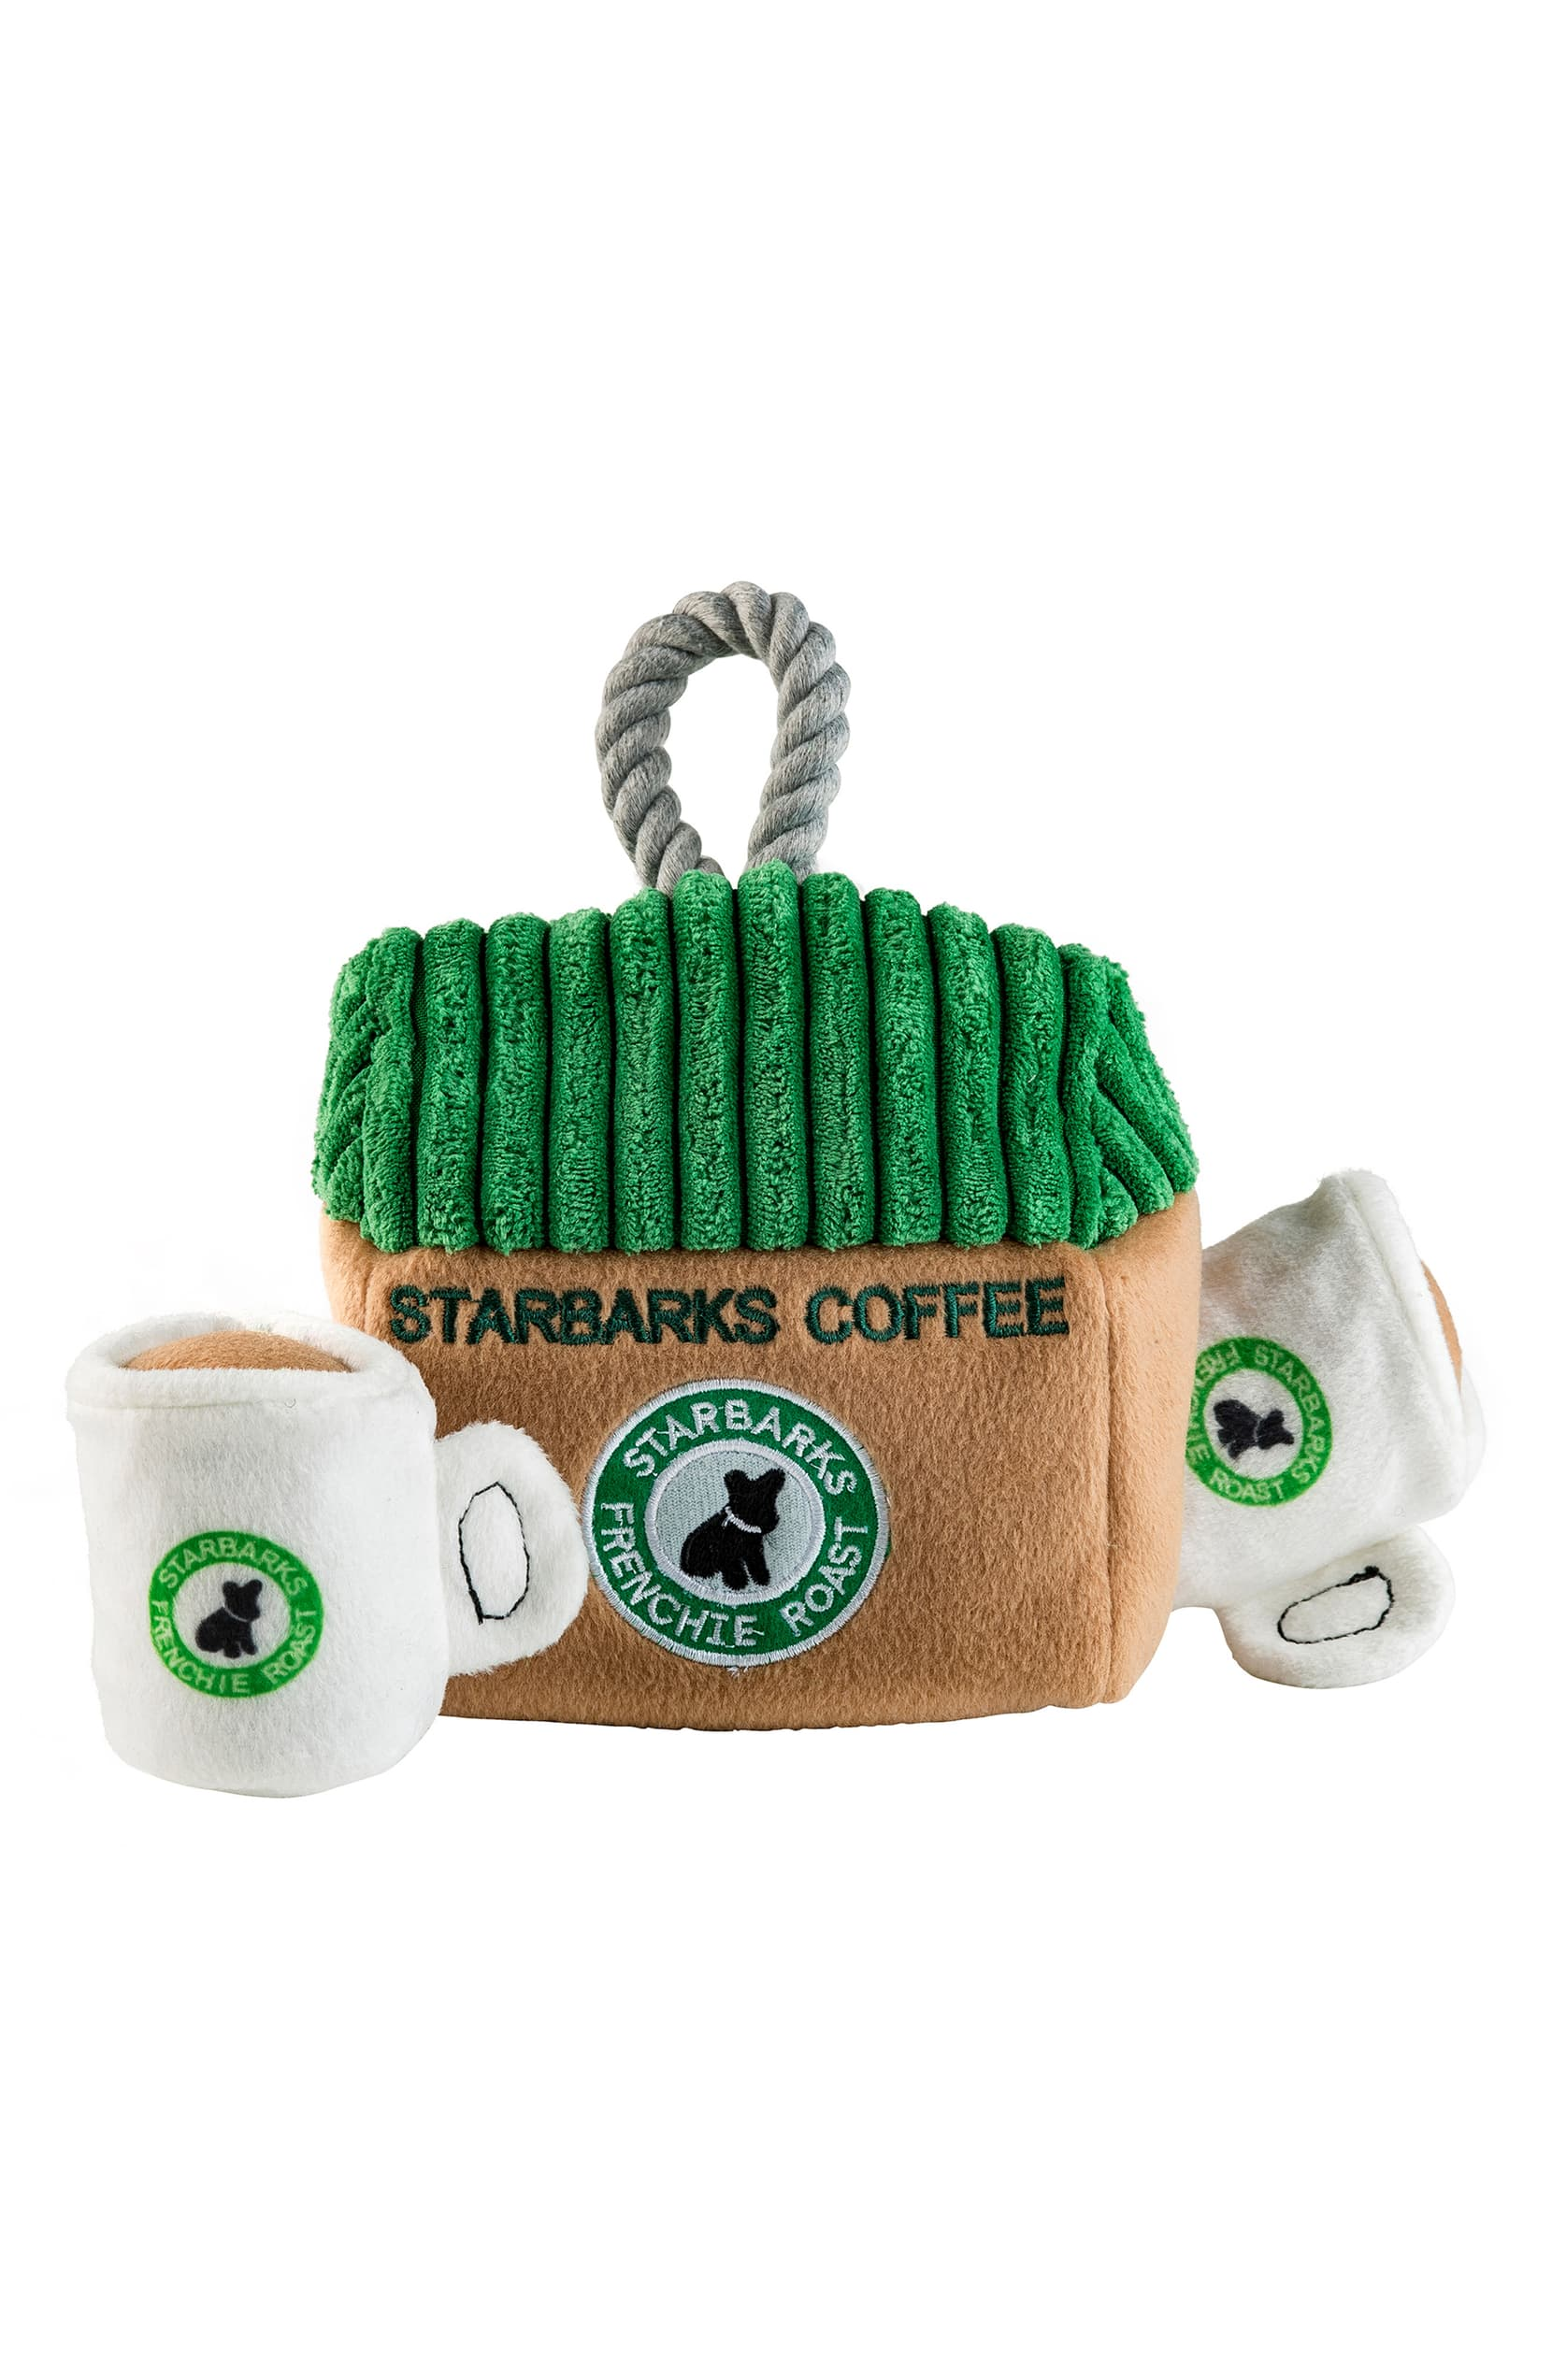 "<a  href=""https://shop.nordstrom.com/s/haute-diggity-dog-starbarks-coffee-house-dog-toy/5373834?origin=keywordsearch-personalizedsort&breadcrumb=Home%2FAll%20Results&color=green%20multi"" target=""_blank"" title=""https://shop.nordstrom.com/s/haute-diggity-dog-starbarks-coffee-house-dog-toy/5373834?origin=keywordsearch-personalizedsort&breadcrumb=Home%2FAll%20Results&color=green%20multi"">Starbarks Coffee House Dog Toy by HAUTE DIGGITY DOG ($25.95)</a>{&nbsp;}Doghouse meets coffee house with an interactive hide-and-seek Starbarks complete with two Frenchie Roast mugs for Fido's playtime caffeine fix. (Image: Nordstrom)"